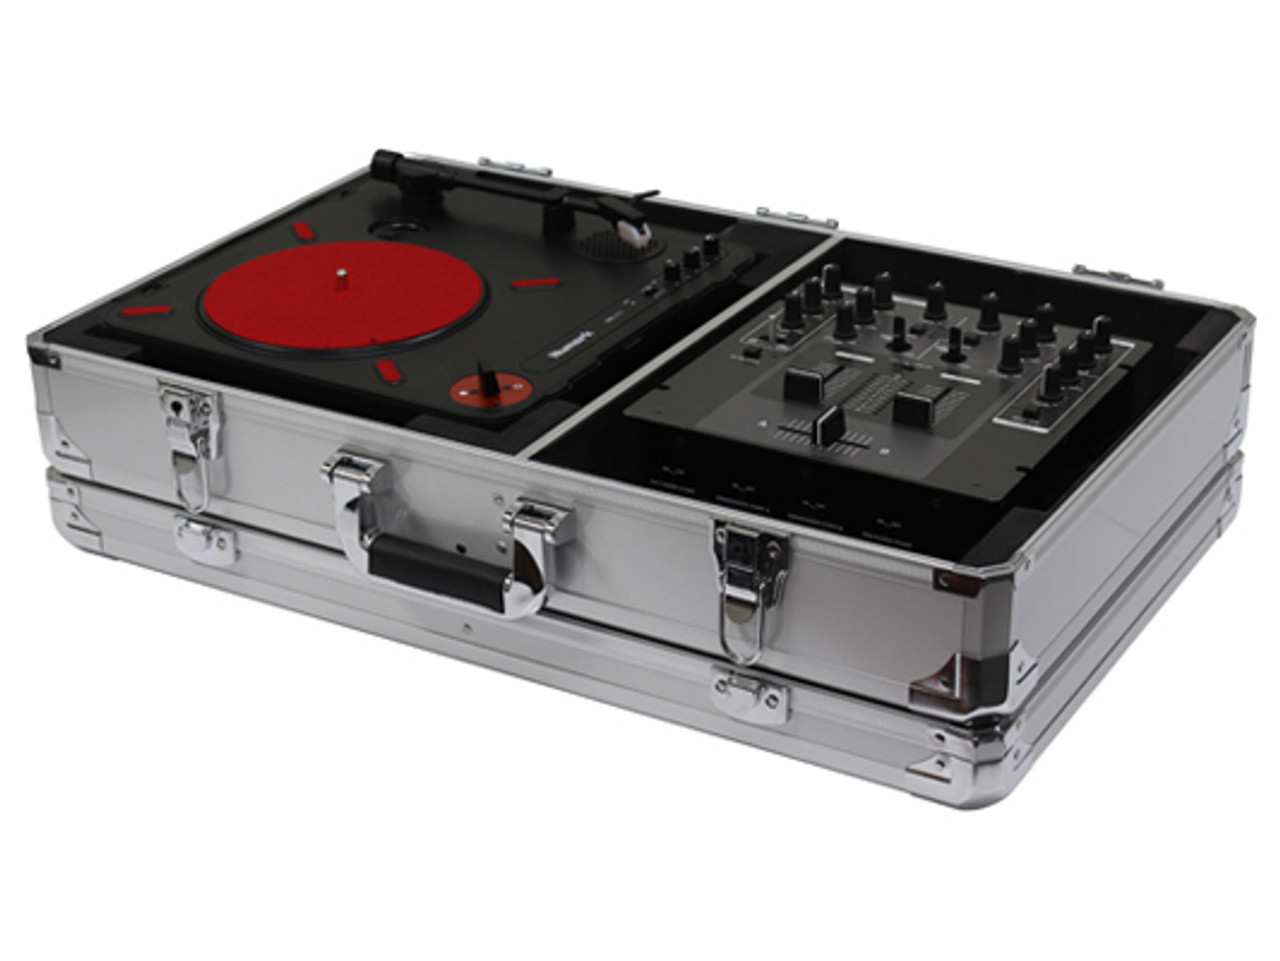 ODYSSEY KPT01SCSIL KROM™ NUMARK PT01 SCRATCH TURNTABLE CASE WITH SIDE  COMPARTMENT, SILVER